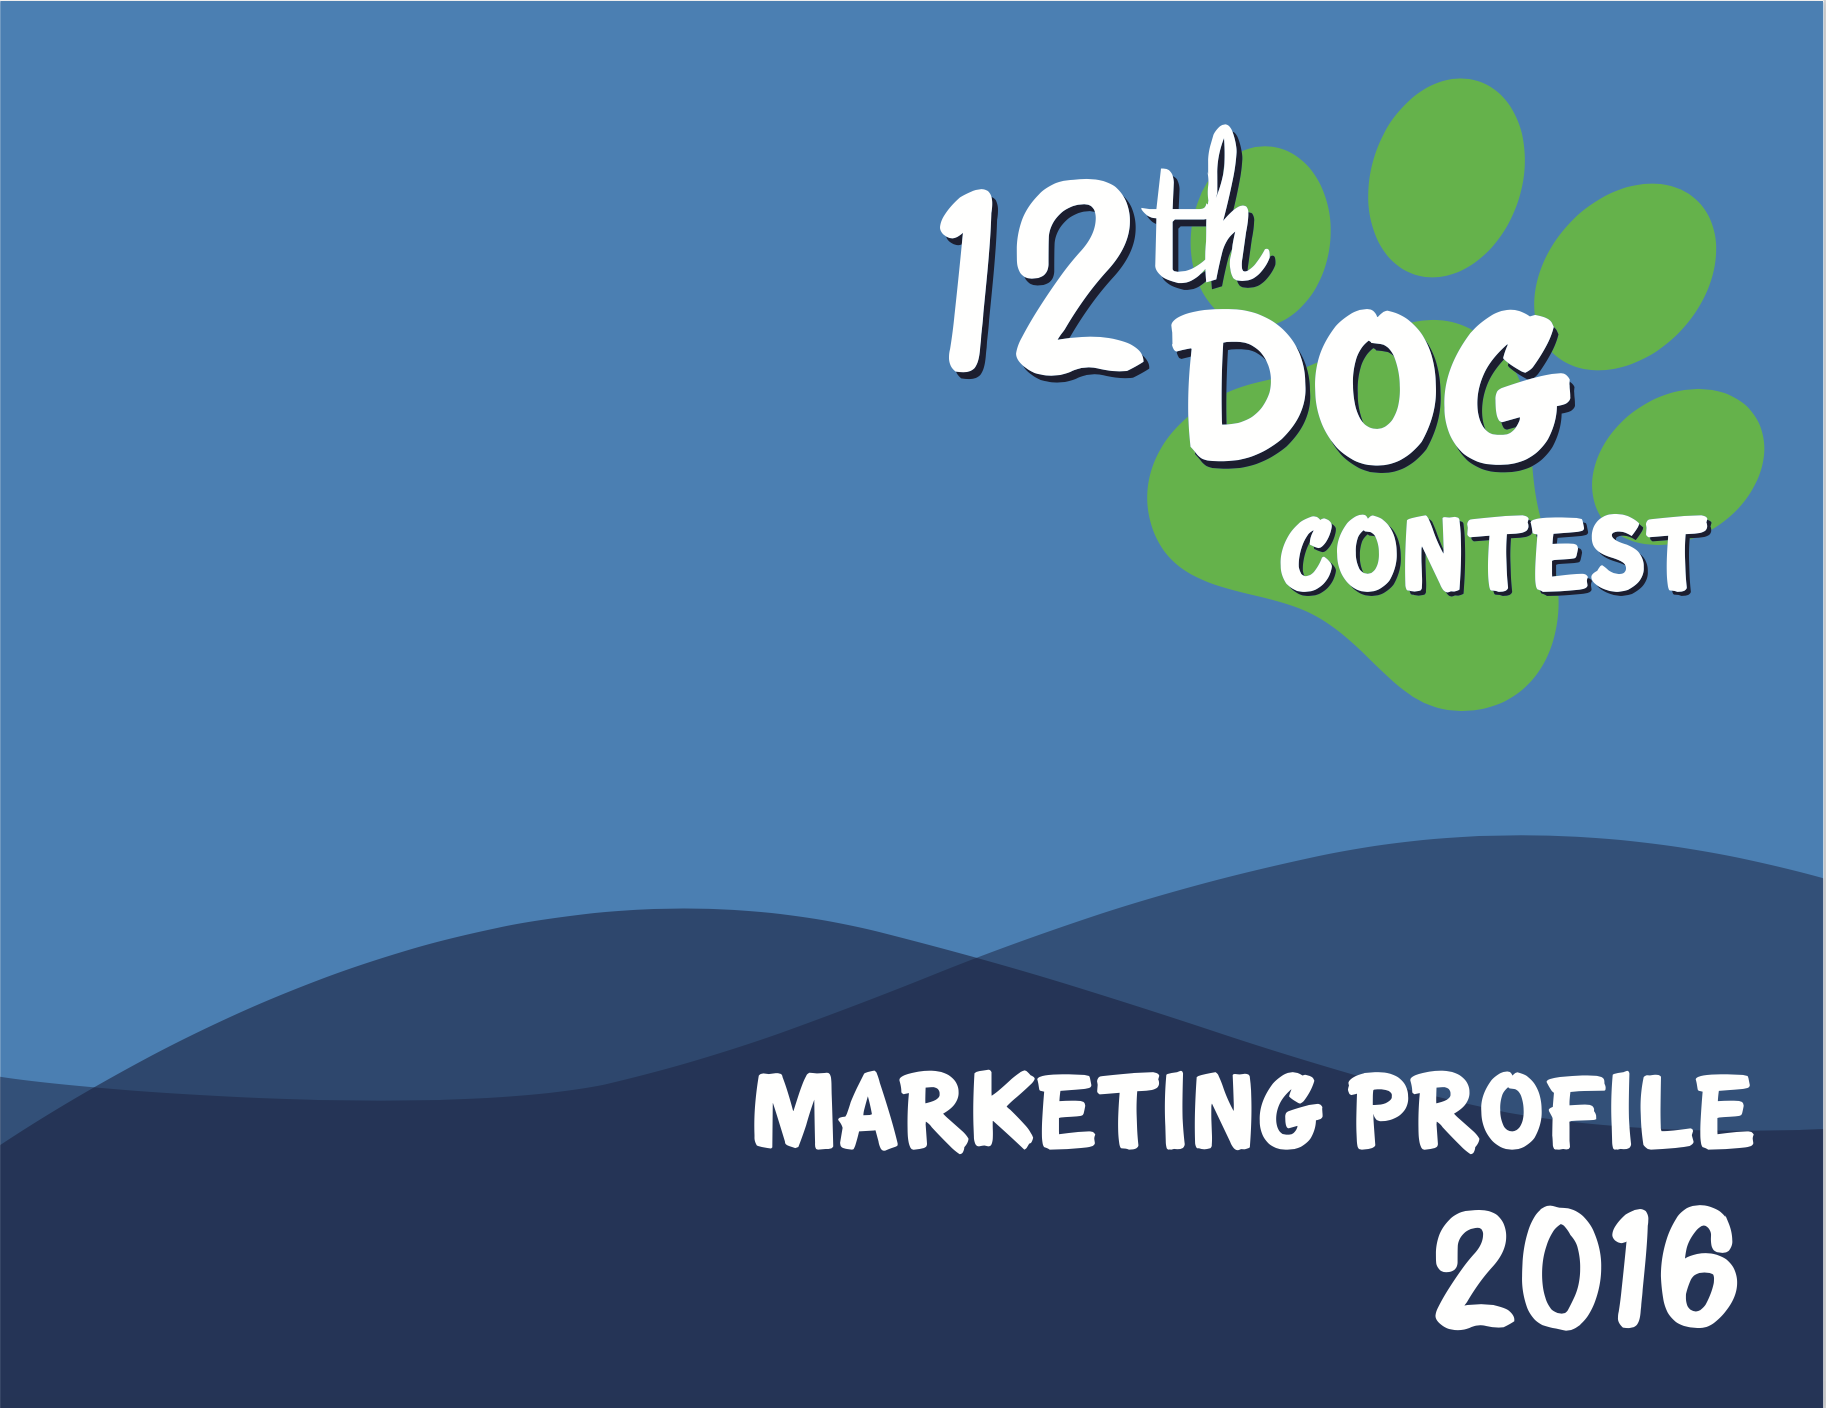 CLICK    to scroll through 12th Dog Contest Marketing Profile